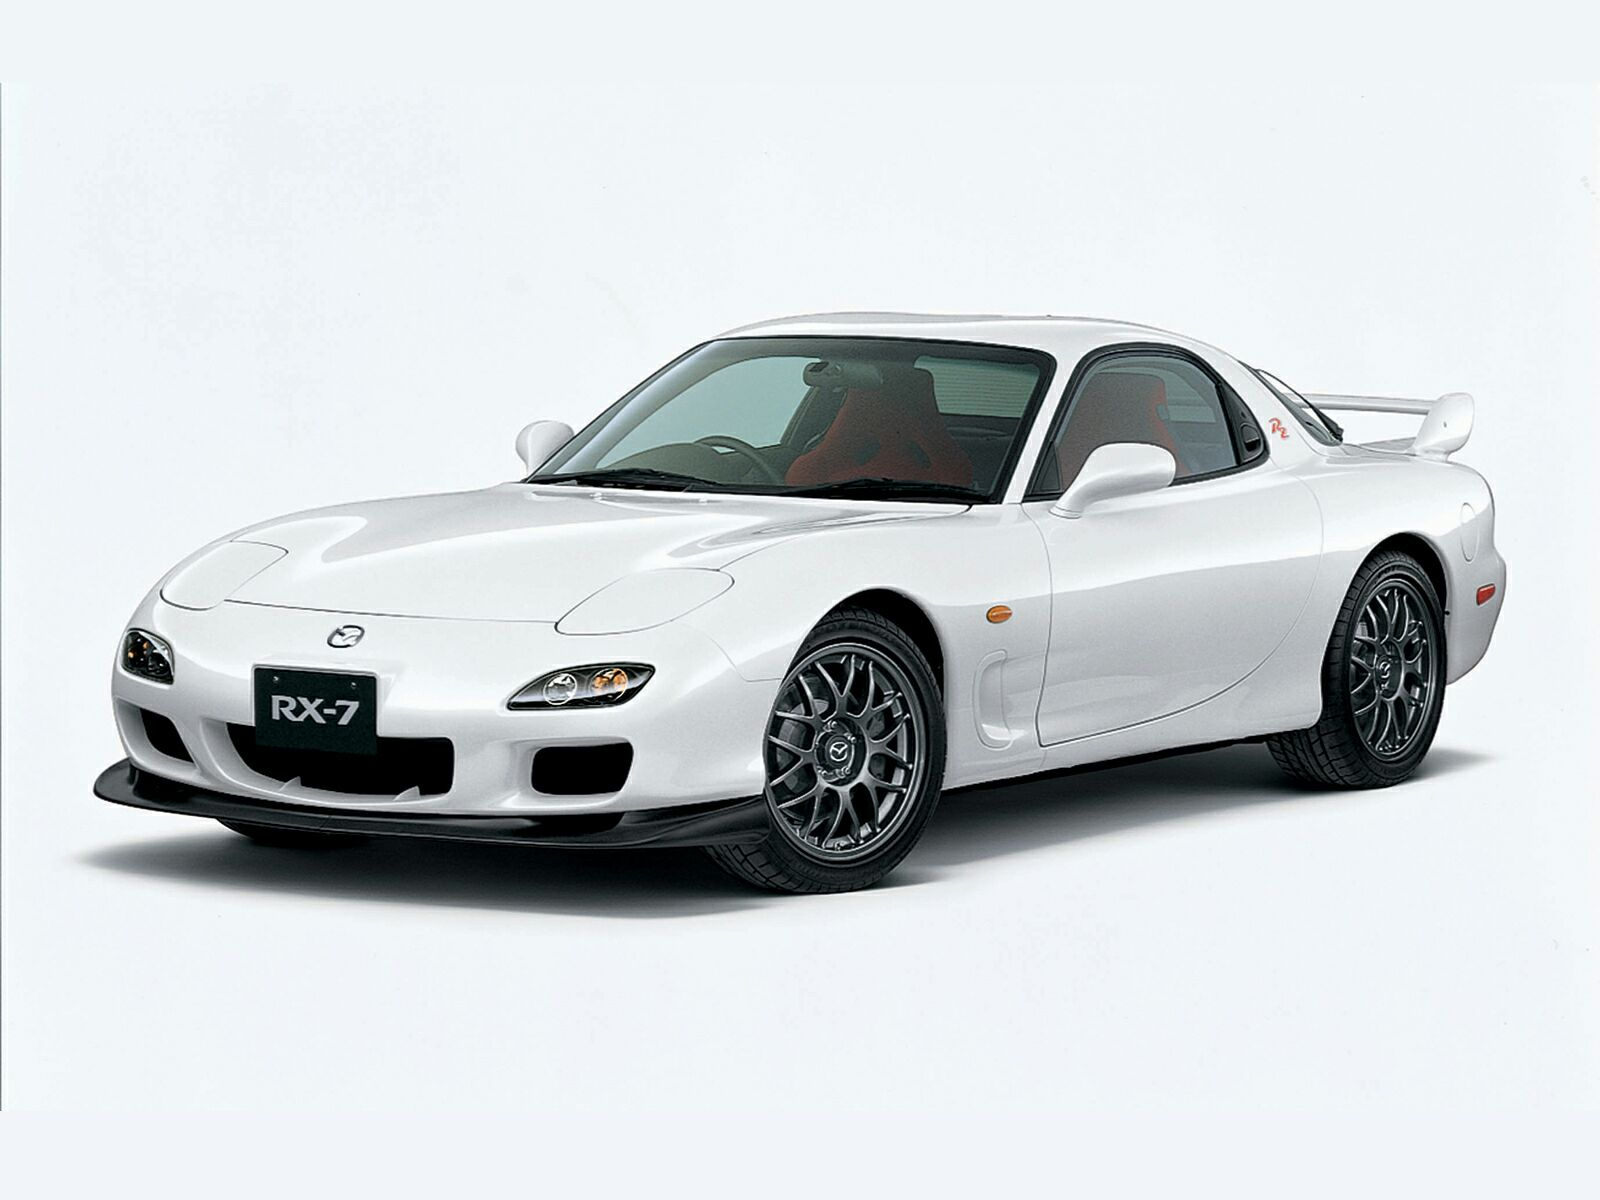 3dtuning Of Mazda Rx 7 Spirit R Type A Coupe 2002 3dtuning